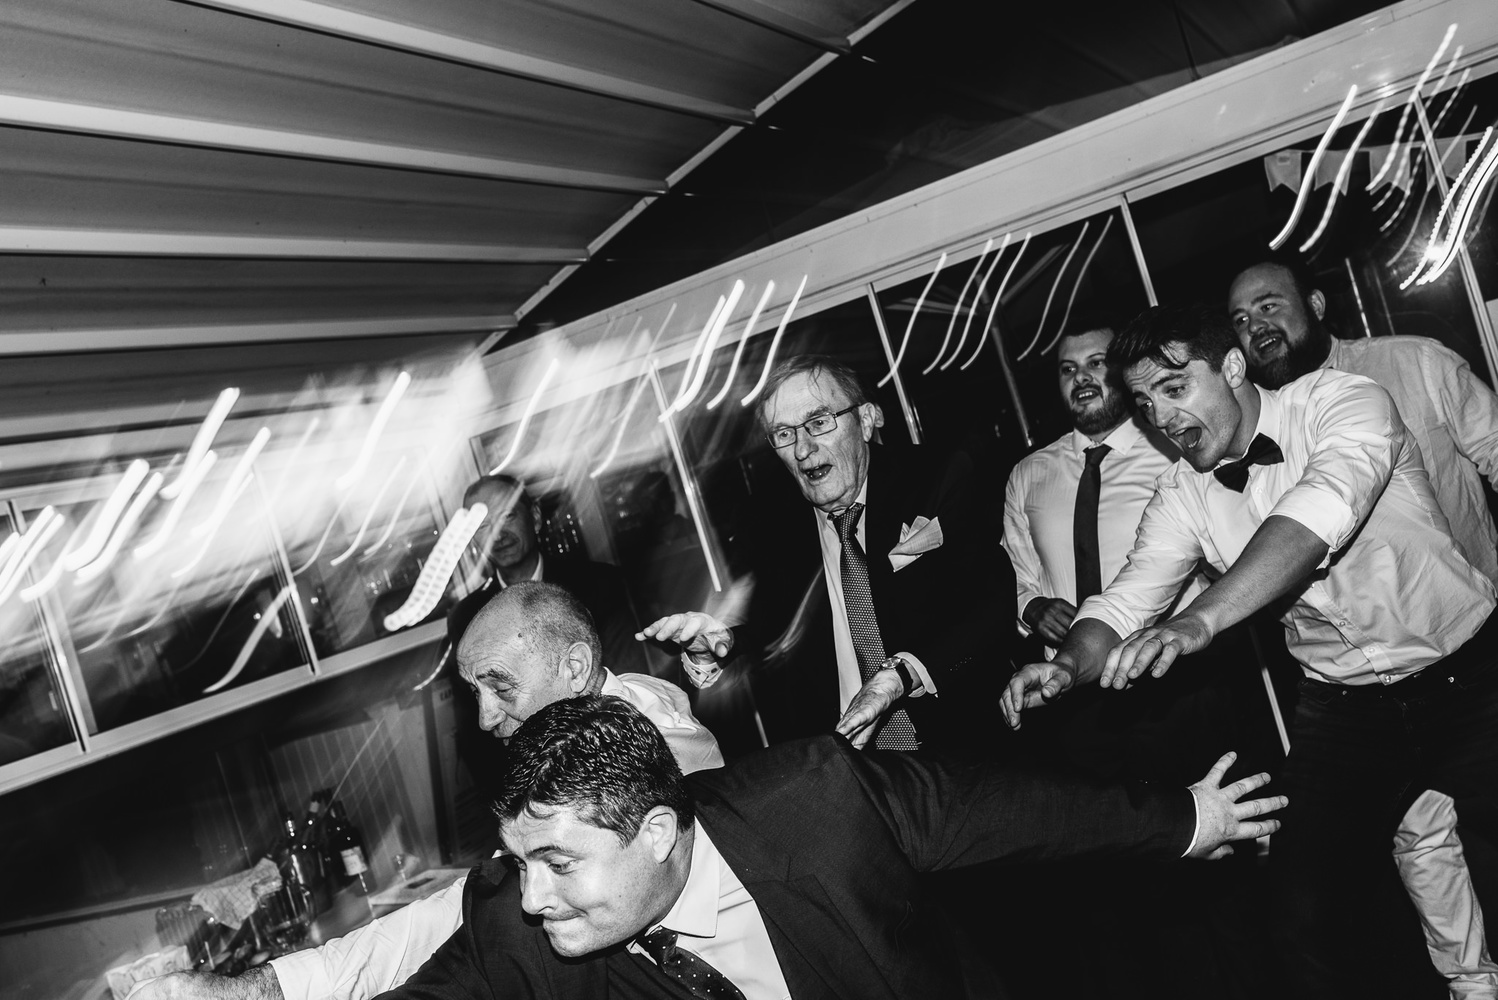 Groom's party on a dancefloor